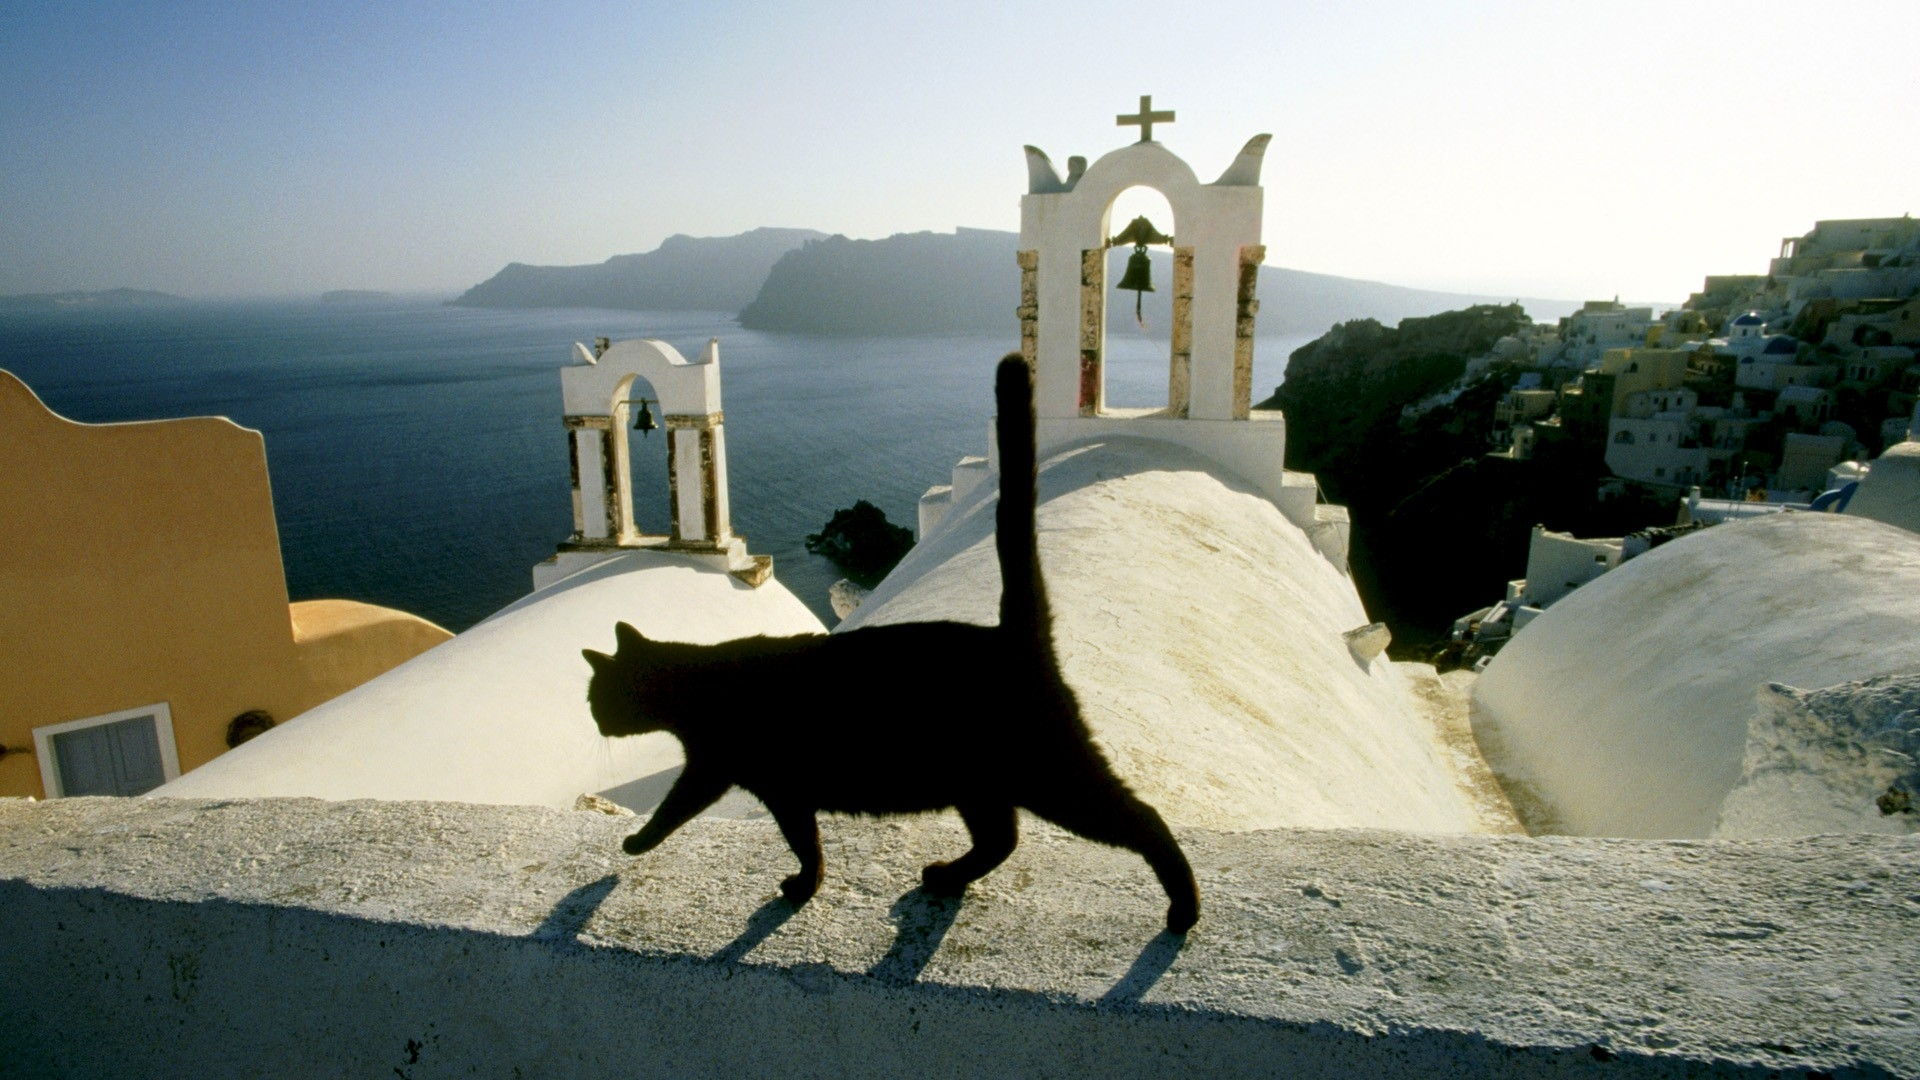 cats animals santorini islands greece 1920x1080 wallpaper High 1920x1080